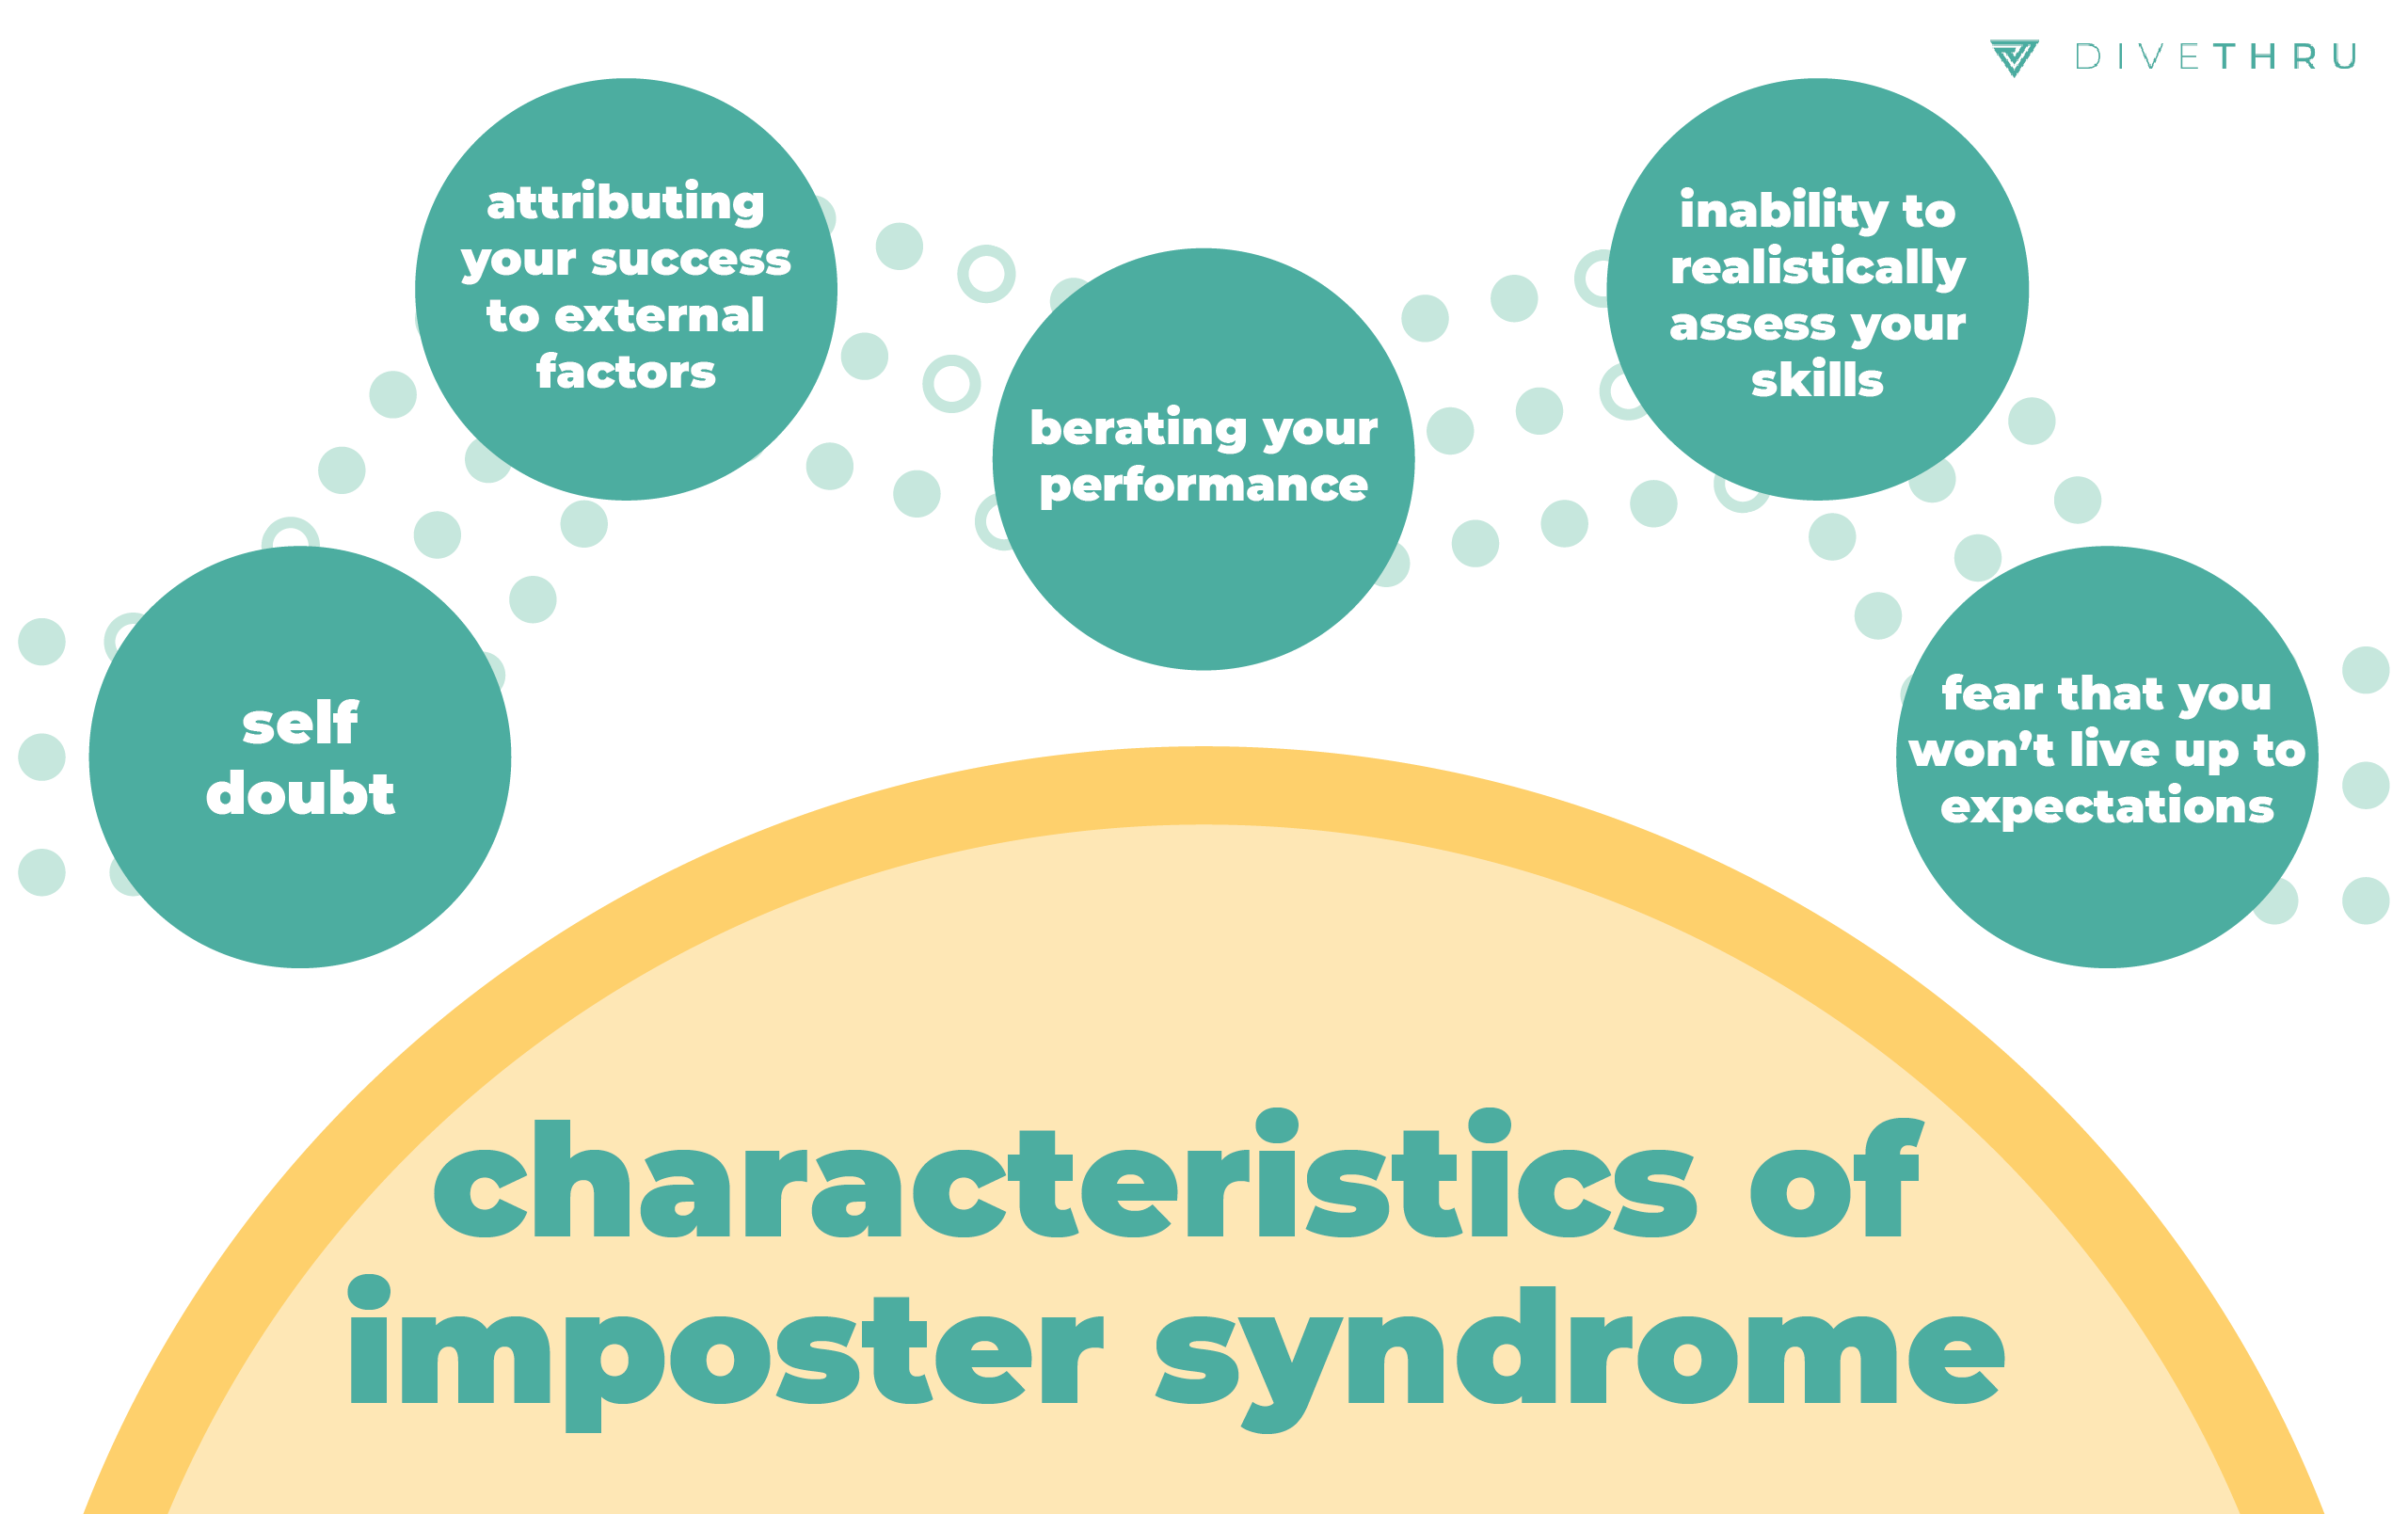 characteristics of imposter syndrome include self doubt, attributing your success to external factors, berating your own performance, an inability to realistically assess your skills, and fear that you won't live up to expectations